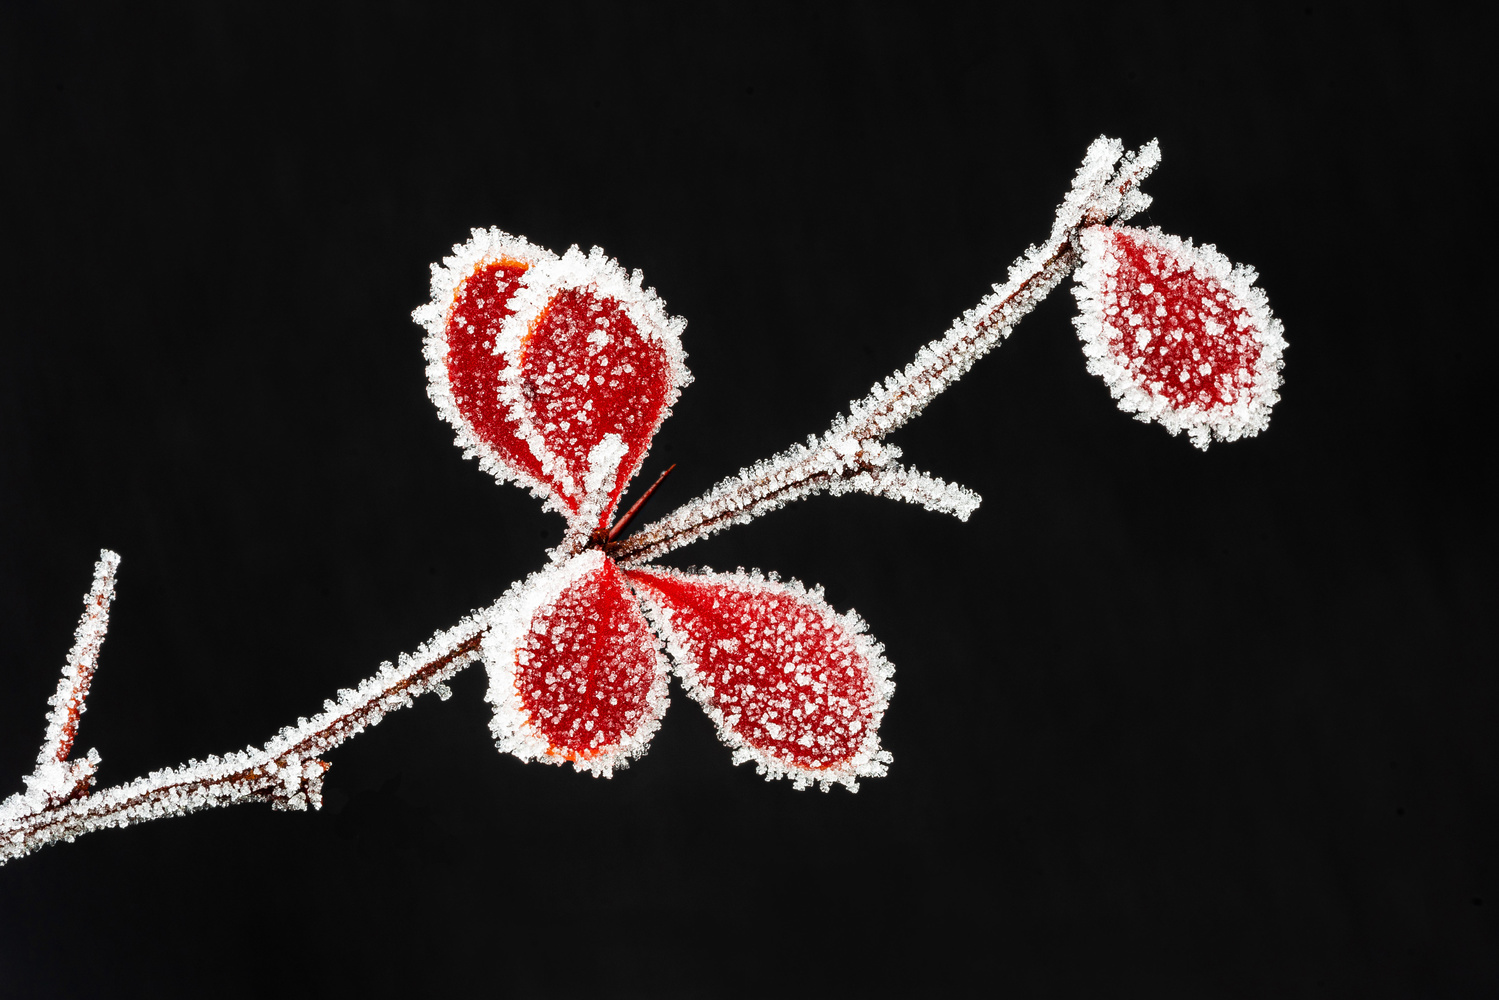 Red leaves with ice by Hans van Voorst